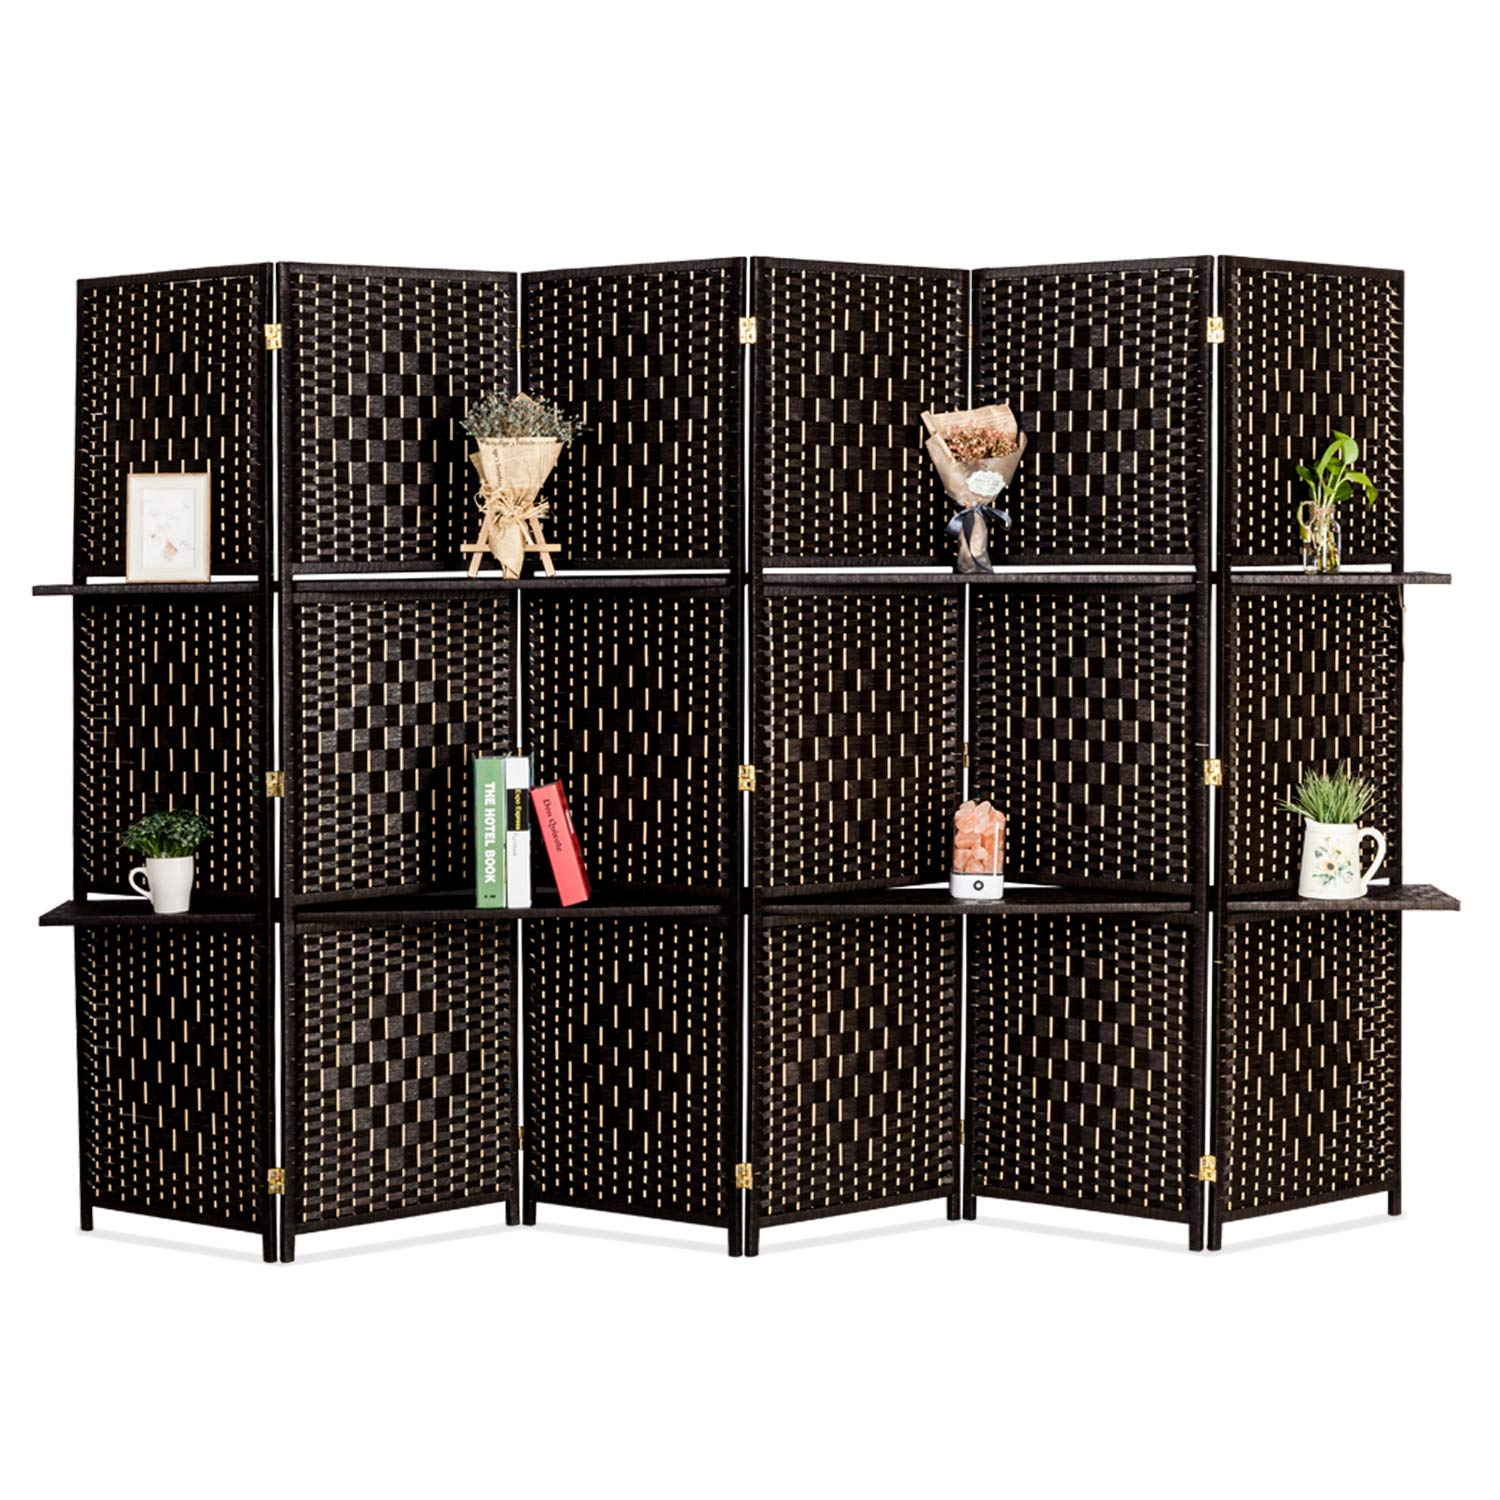 Bonnlo Upgraded Heavy Duty 6FT Tall Rattan Room Divider Screens with Partition Wall 2 Display Shelves, Indoor Folding Screen Dual-Sided Hinges for Home Office (6 Panels) by Bonnlo